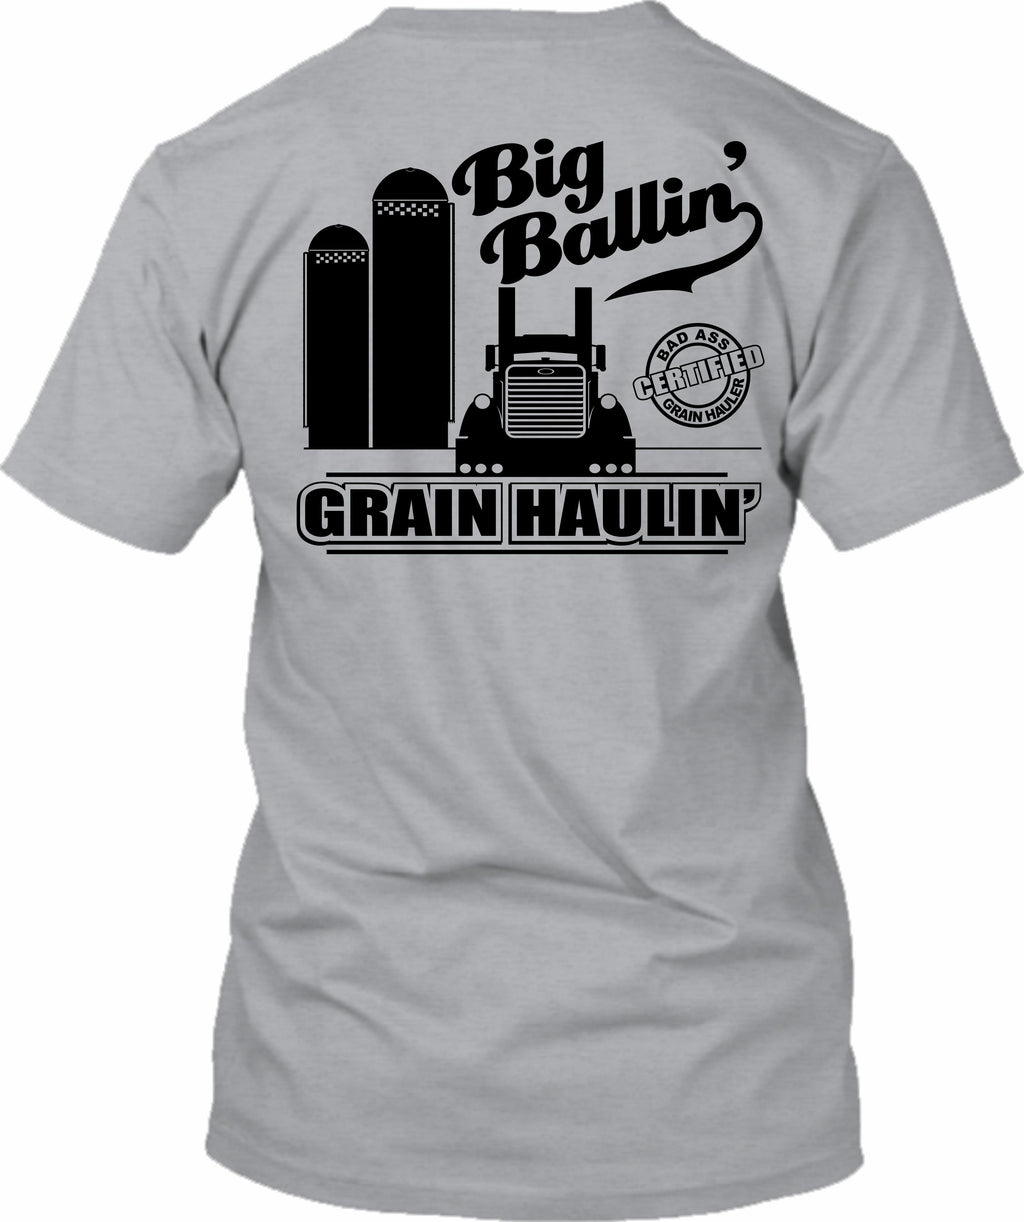 Big Ballin' Grain Haulin' Certified Bad Ass Grain Hauler Pete